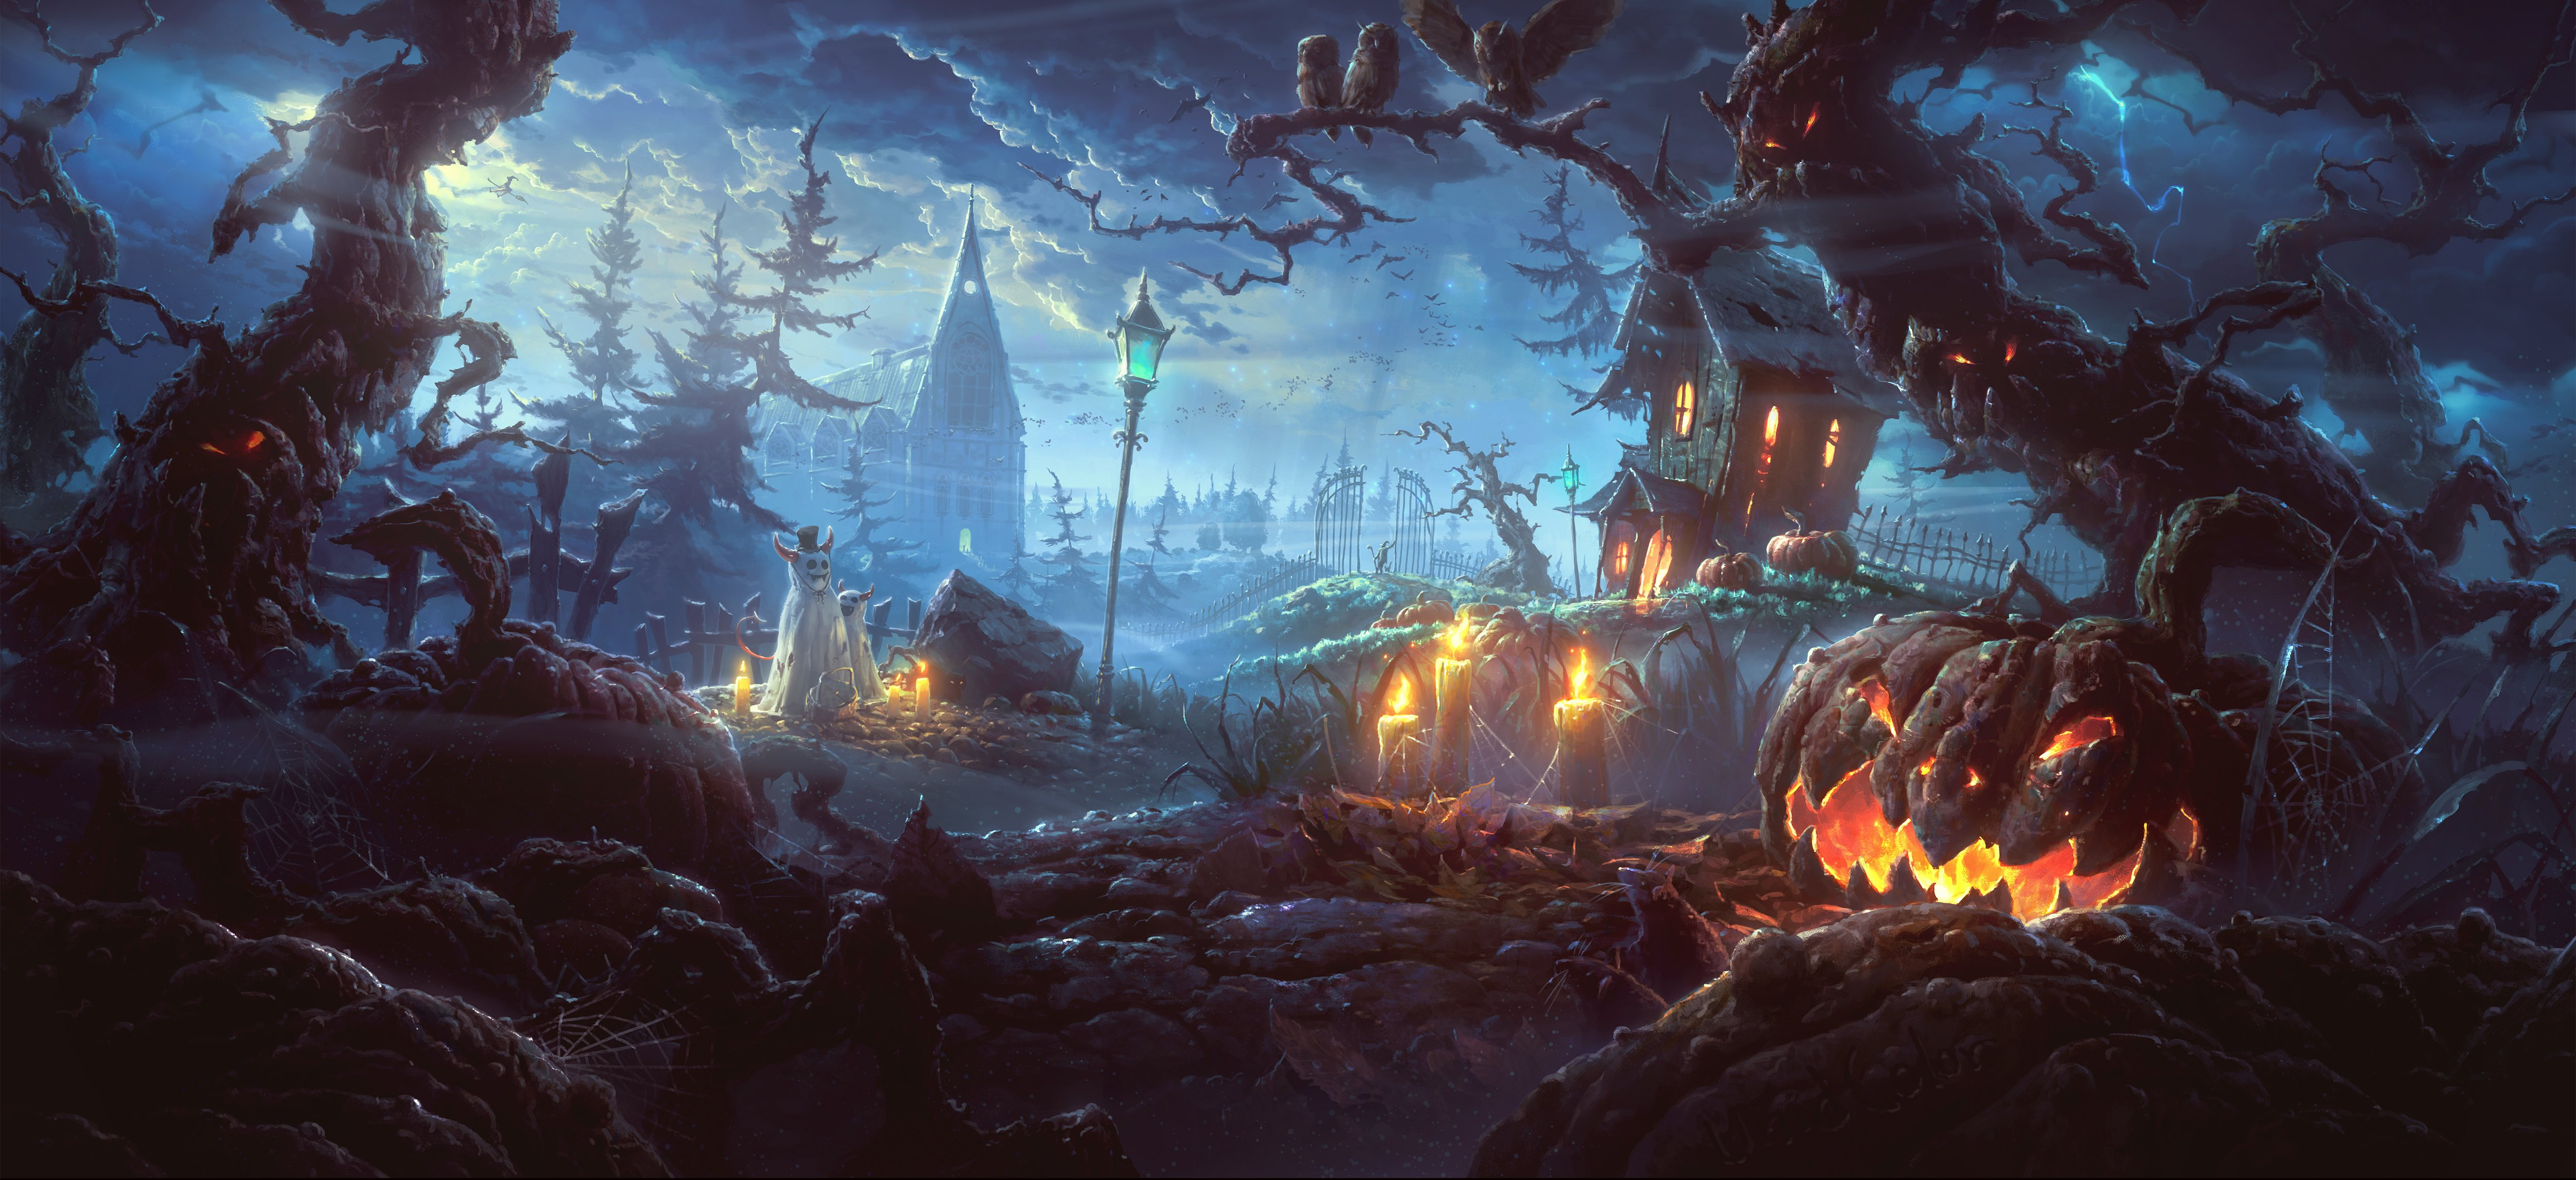 Creepy Halloween 4k Ultra HD Wallpaper Background Image 5000x2290